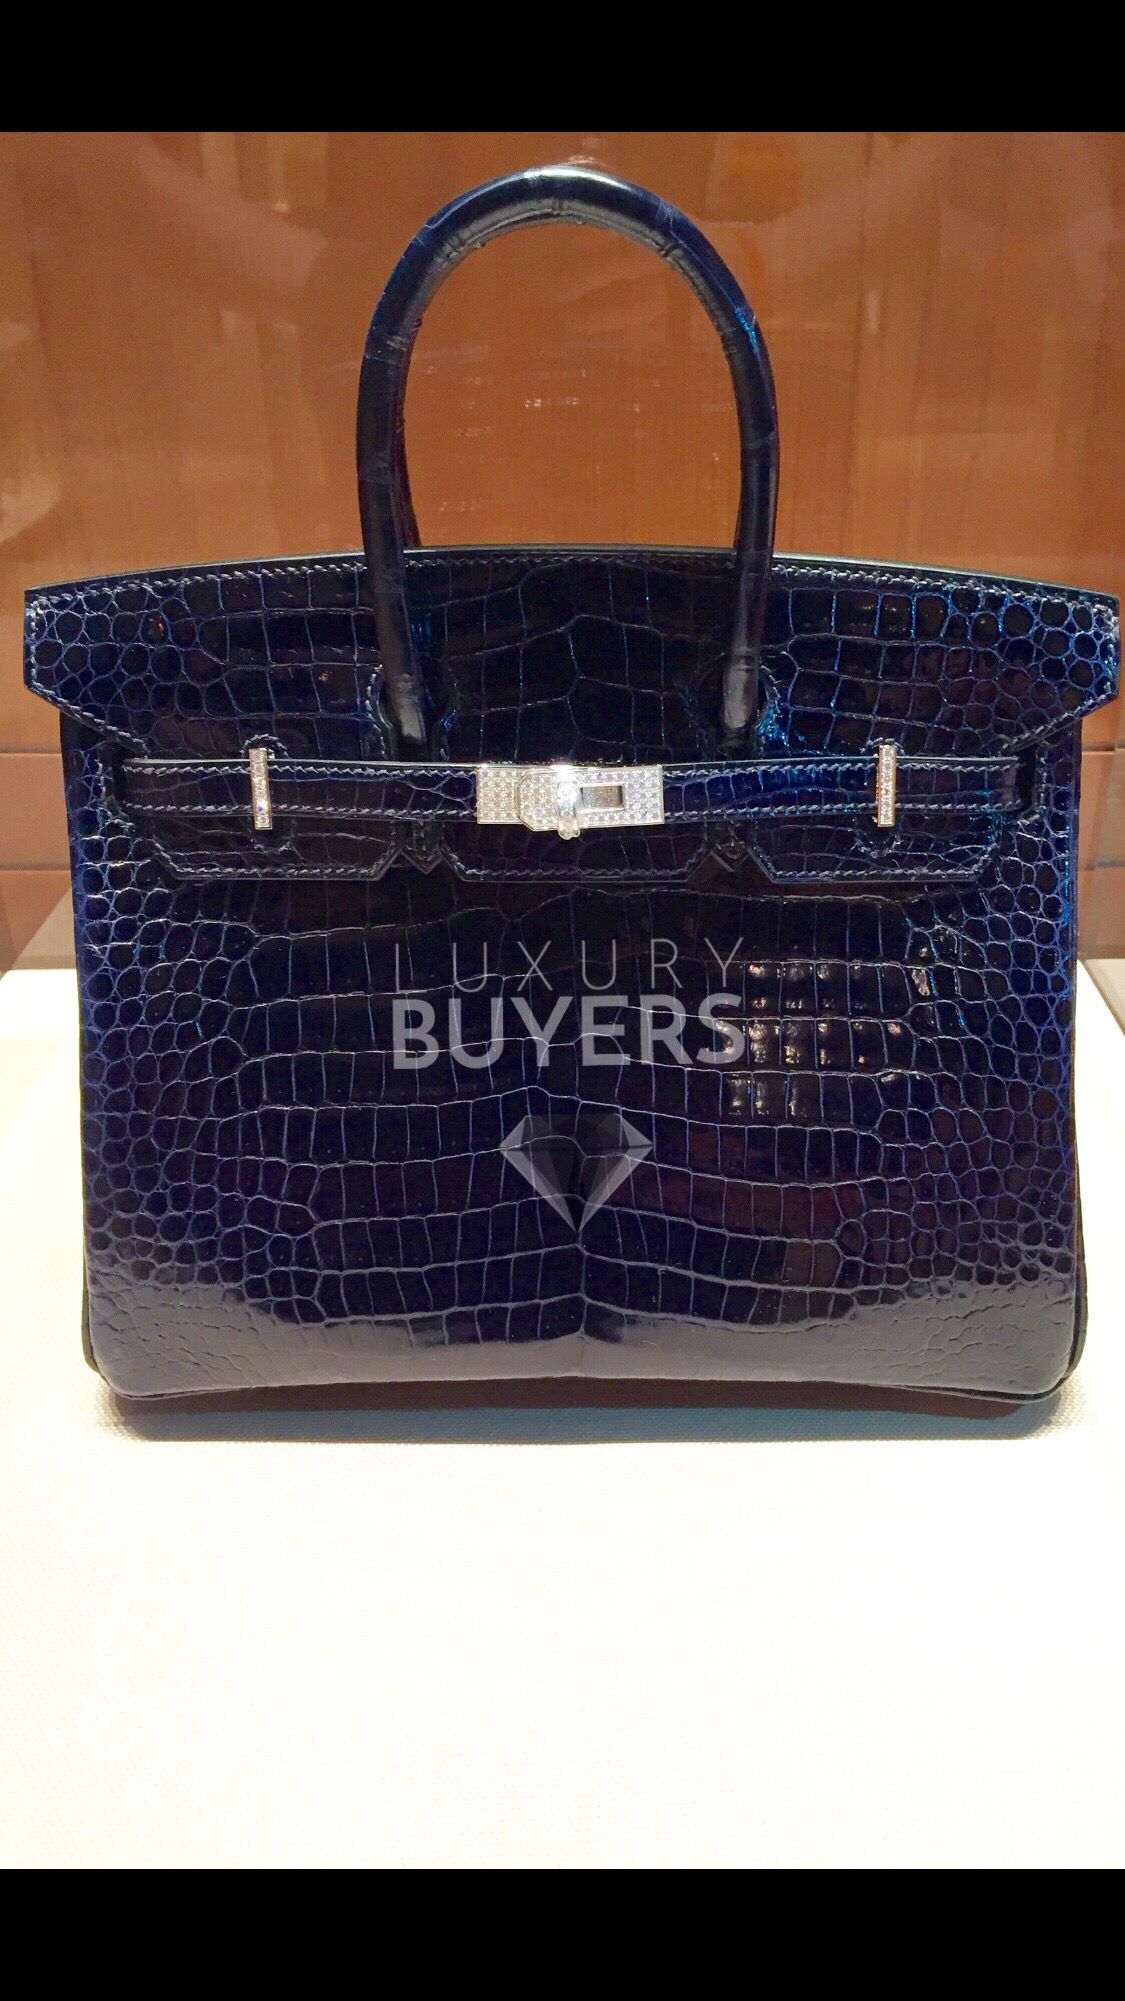 Sell Your Diamond Birkin Bag Online at www.LuxuryBuyers.com   Sell ... daed8b8af4